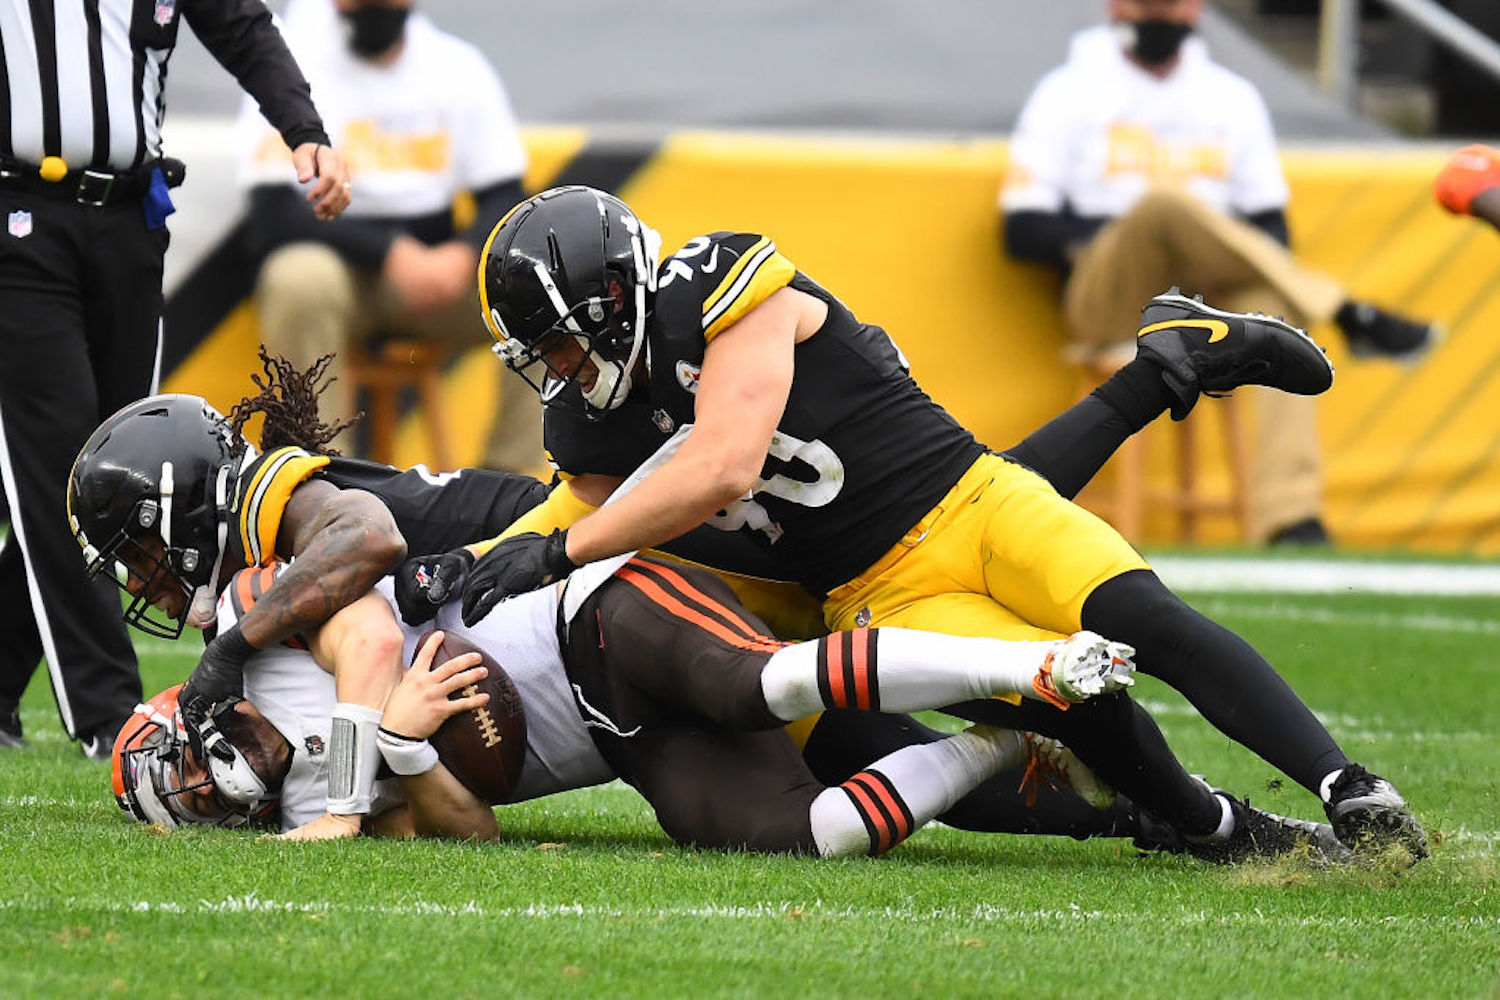 The Pittsburgh Steelers just won their 17th straight home game against the Cleveland Browns, proving they're still the little brother.